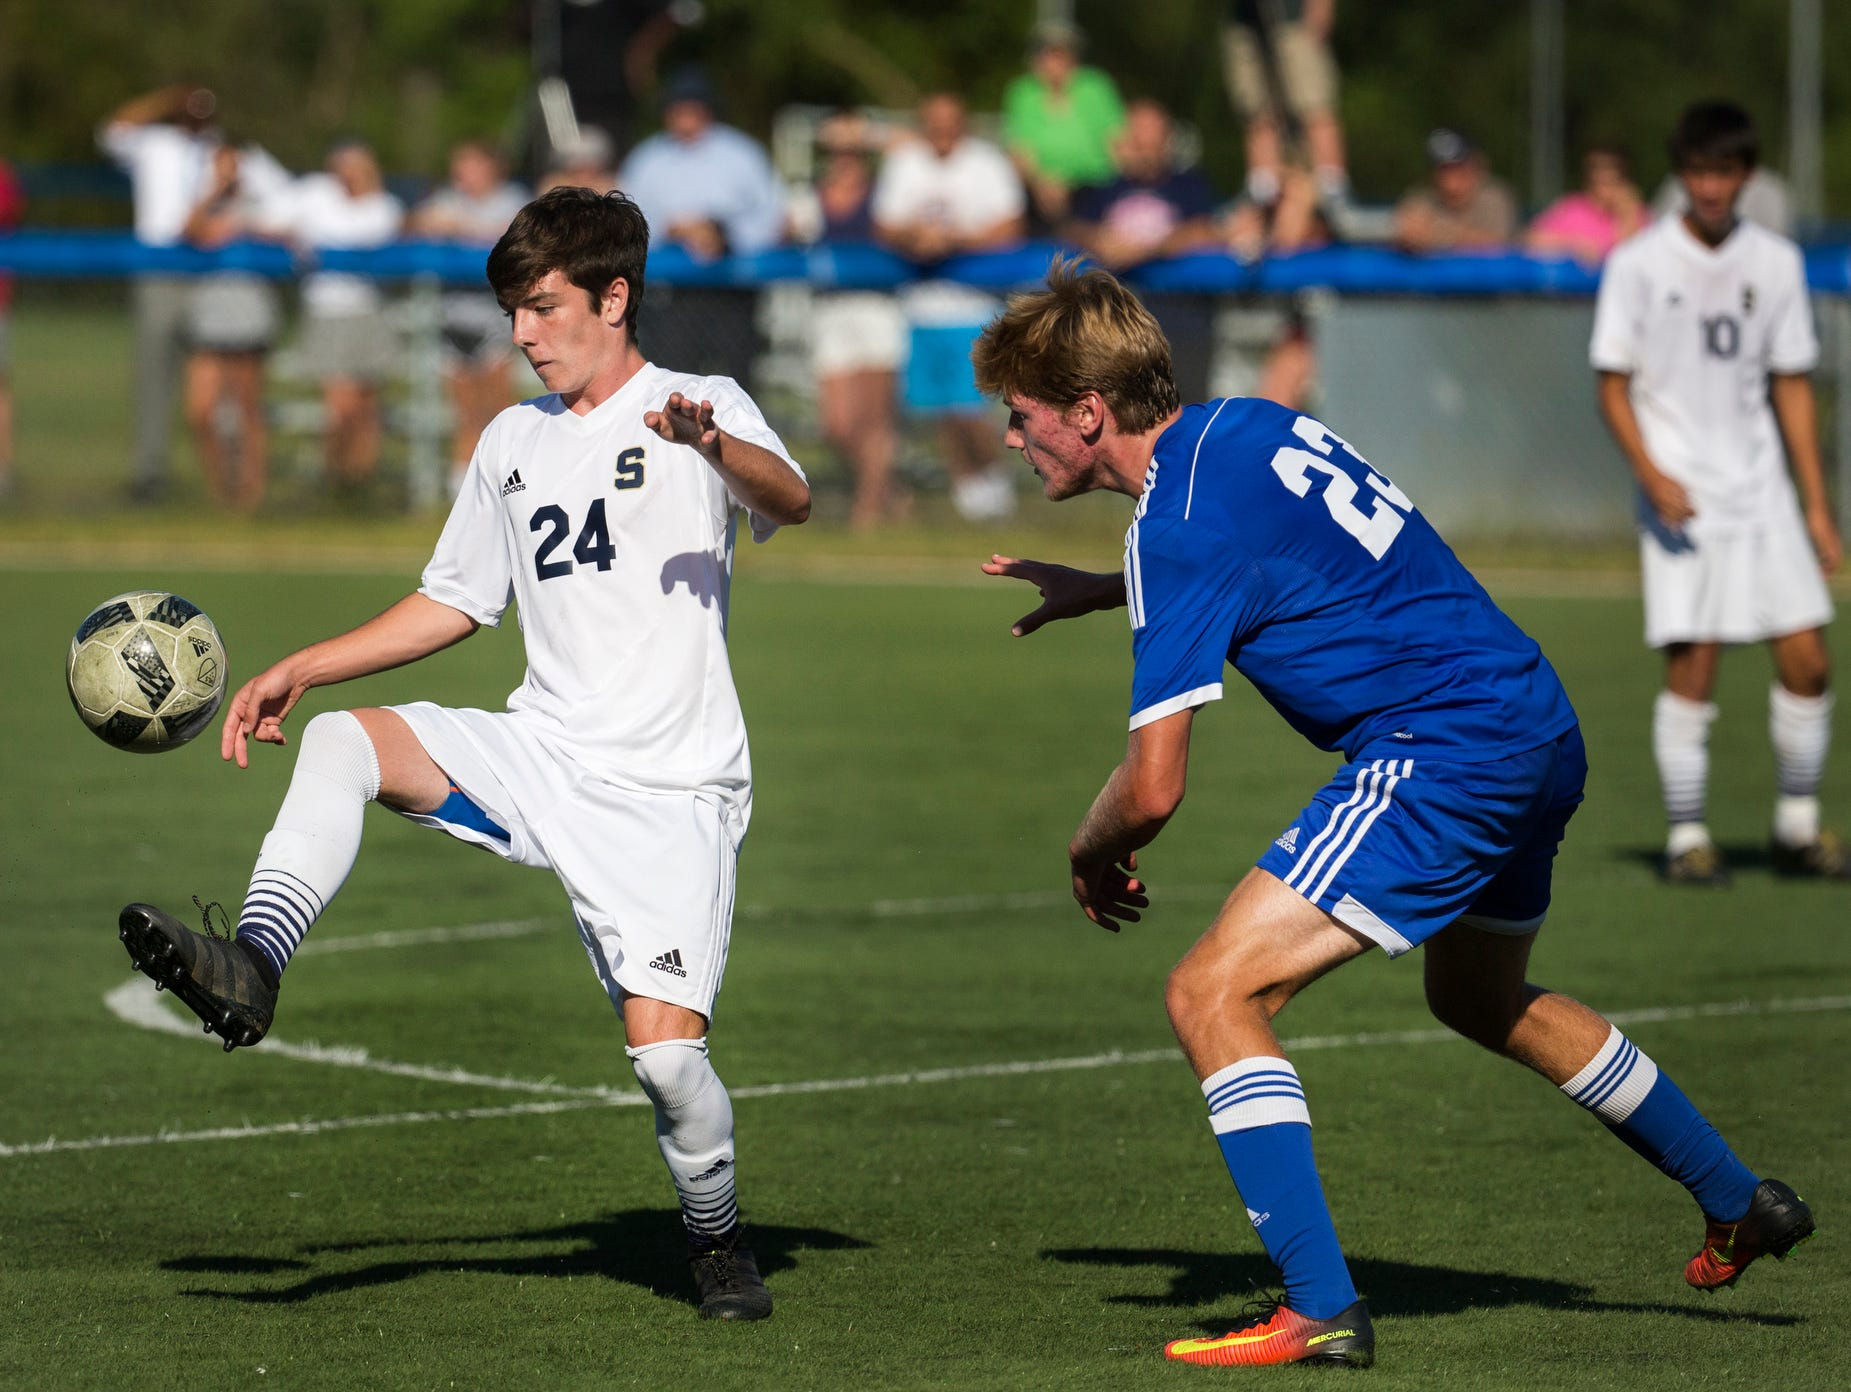 Salesianum's John Leonard (No. 24) traps the ball in front of Wilmington Charter's Rhys Newcombe (No. 23) in the first half of Salesianum's 1-0 win over Wilmington Charter at the Hockessin Soccer Club in Hockessin on Thursday afternoon.